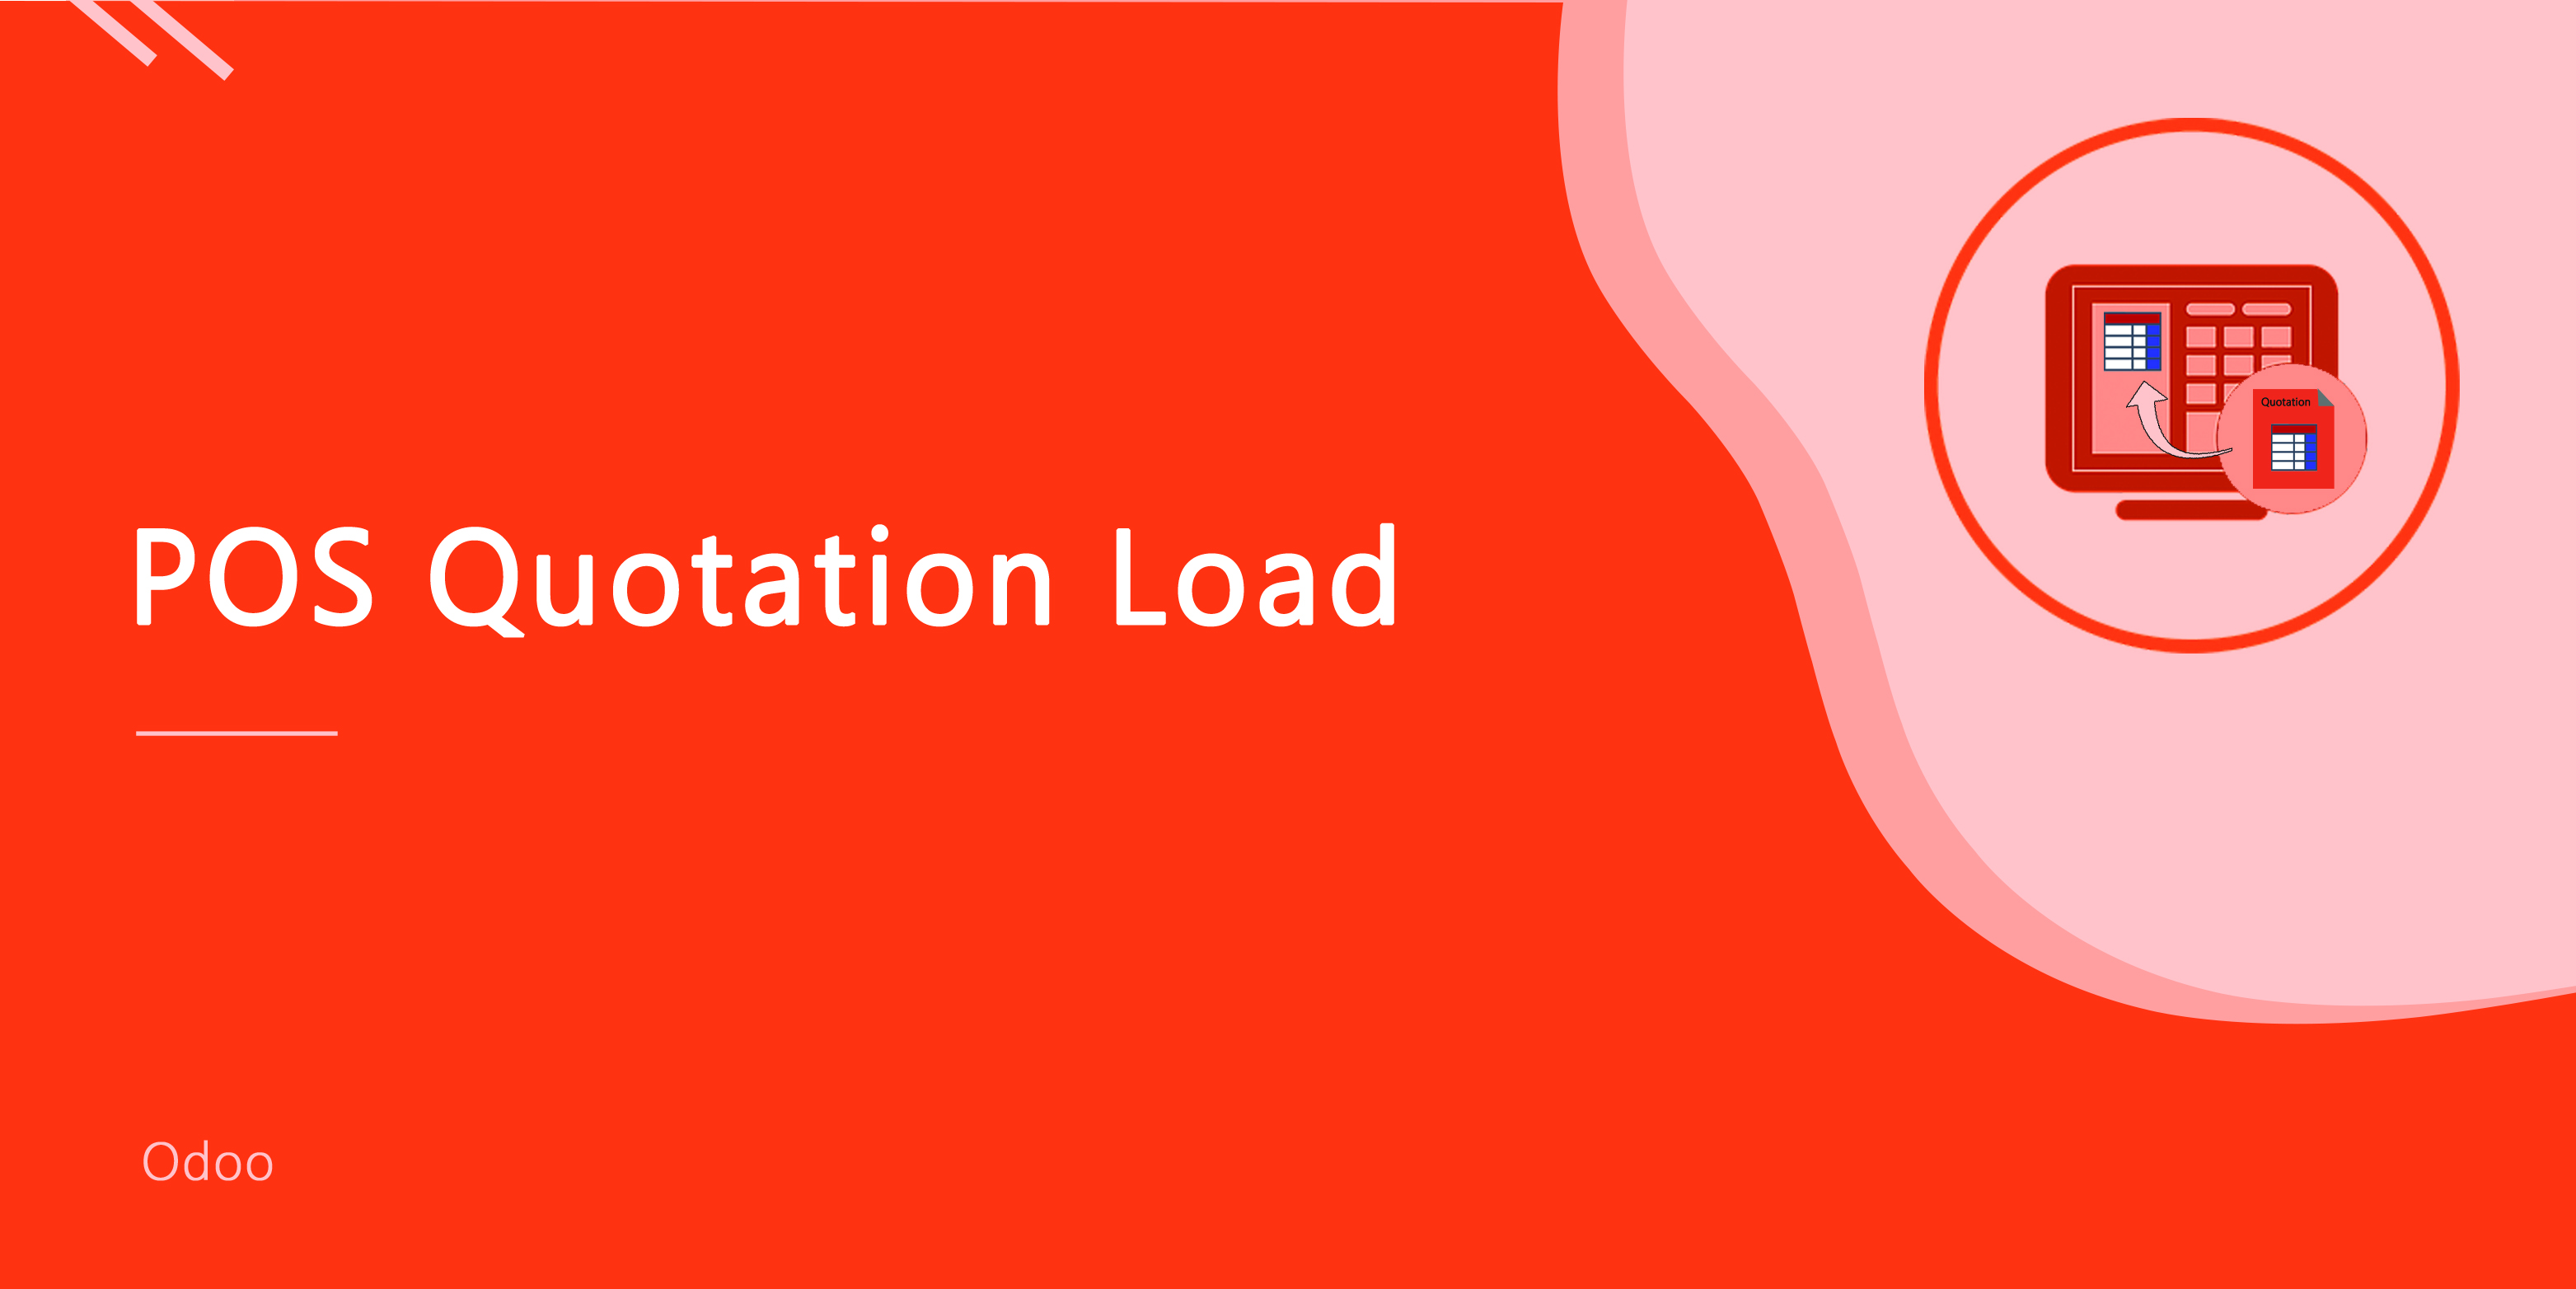 POS Quotation Load